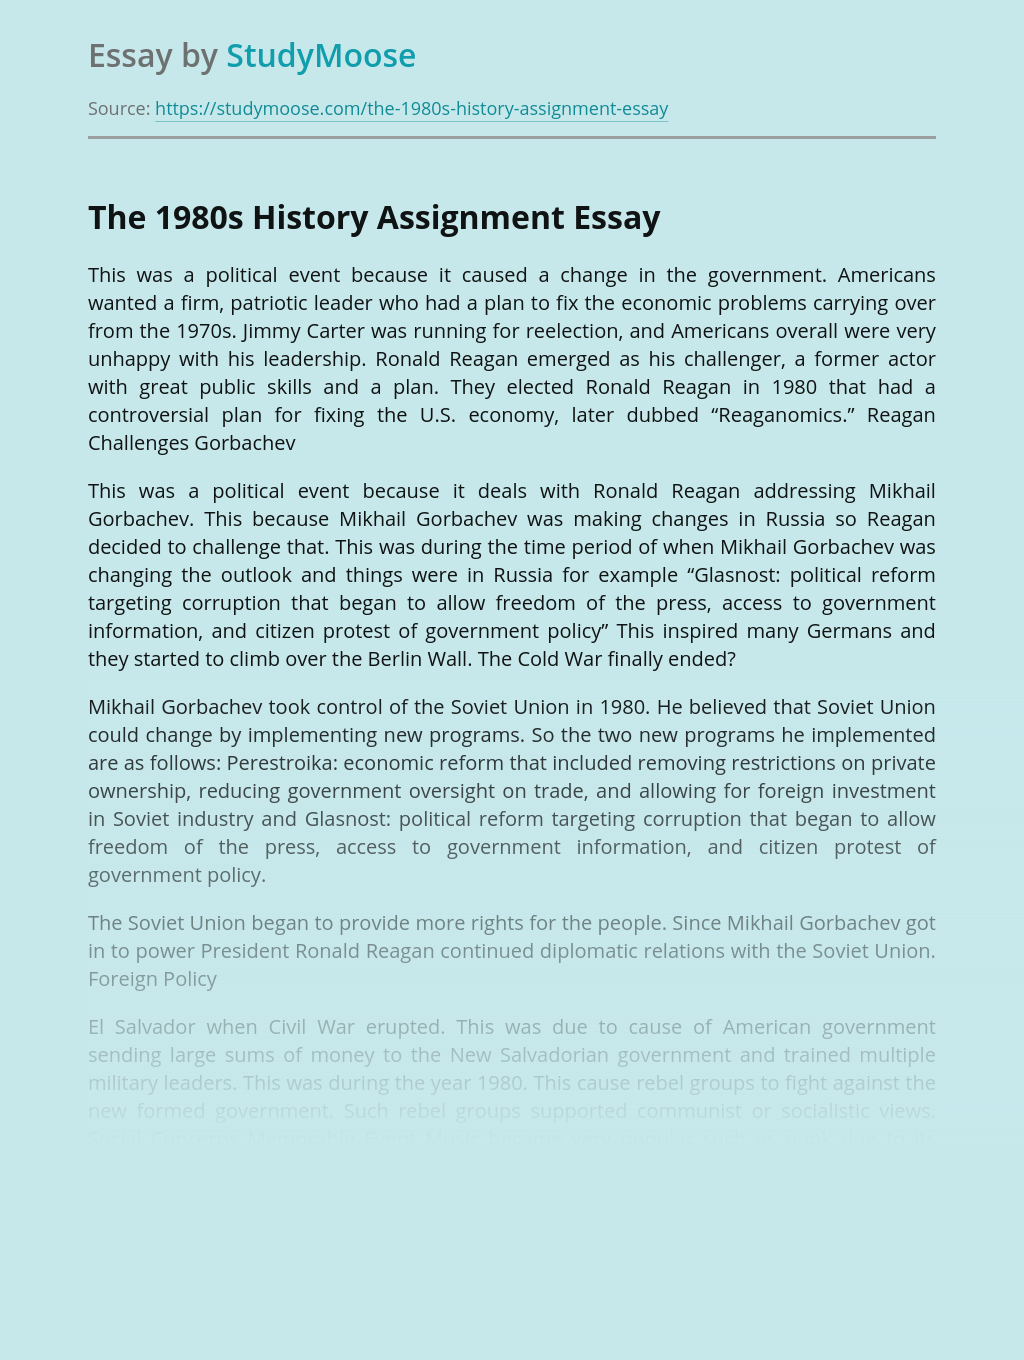 The 1980s History Assignment